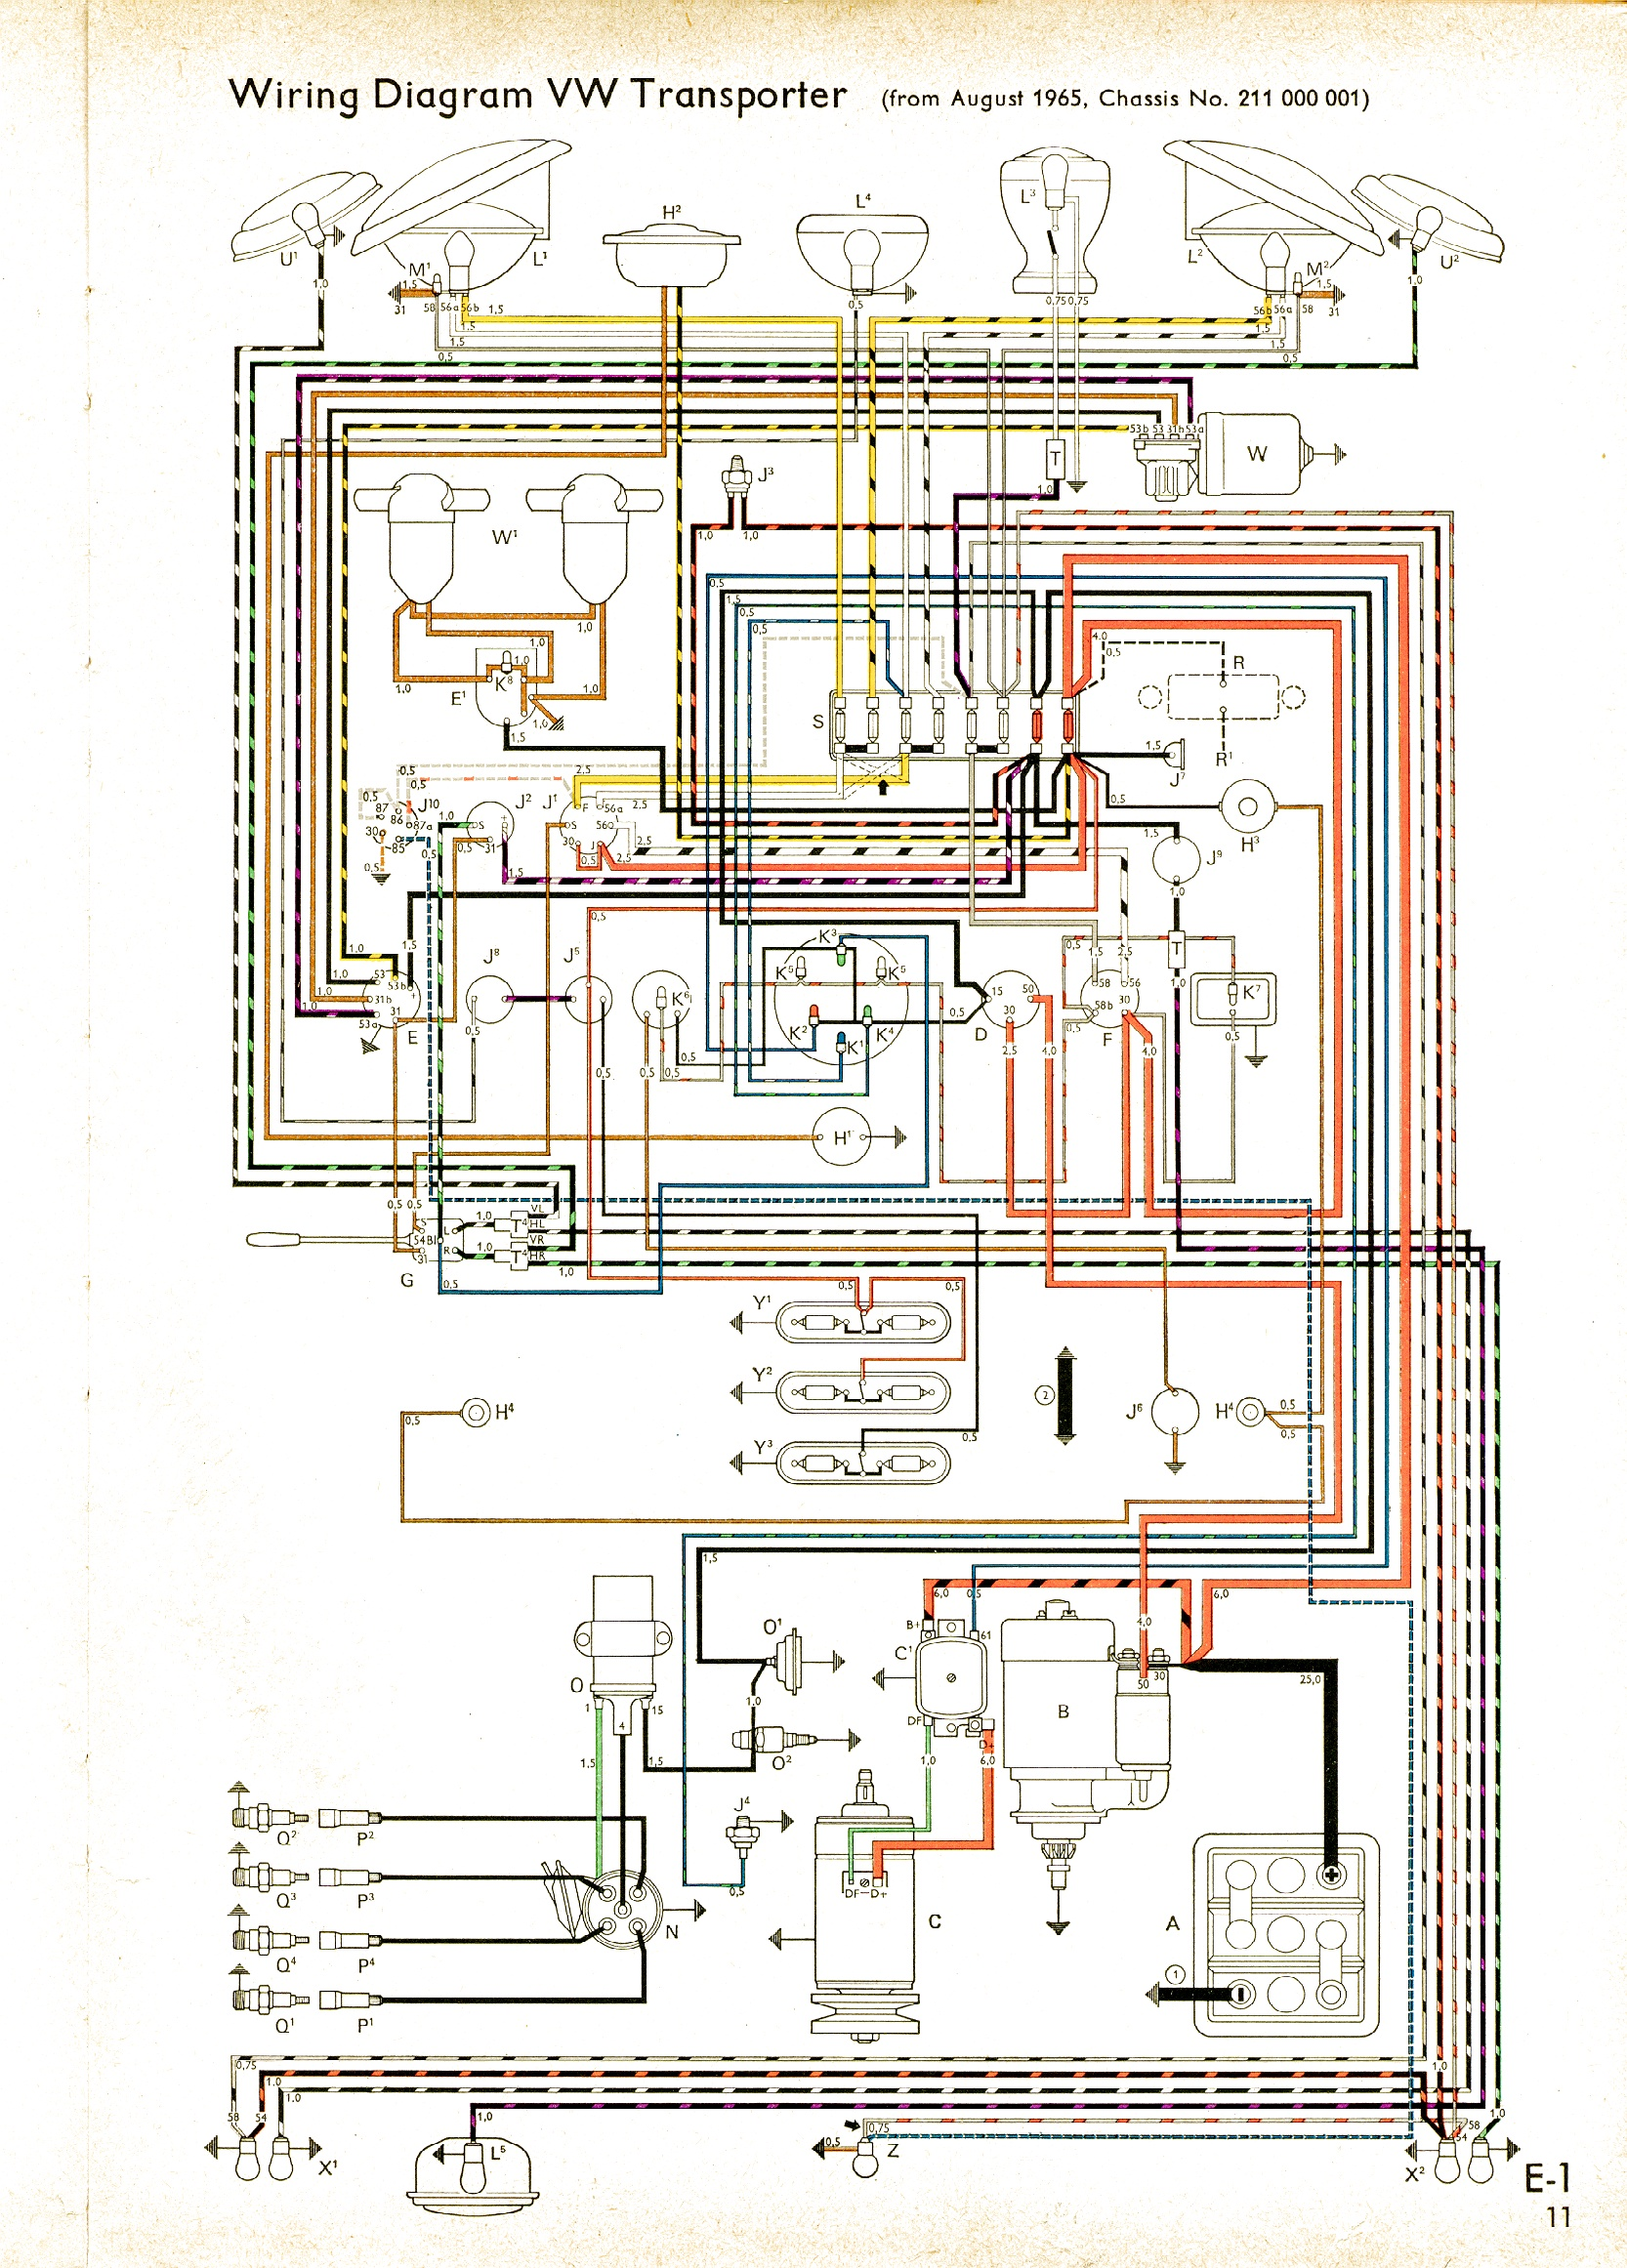 1967 vw beetle wiring diagram RIDAwNe 1967 vw bug wiring diagram on 1967 download wirning diagrams vw bug wiring diagram at mifinder.co